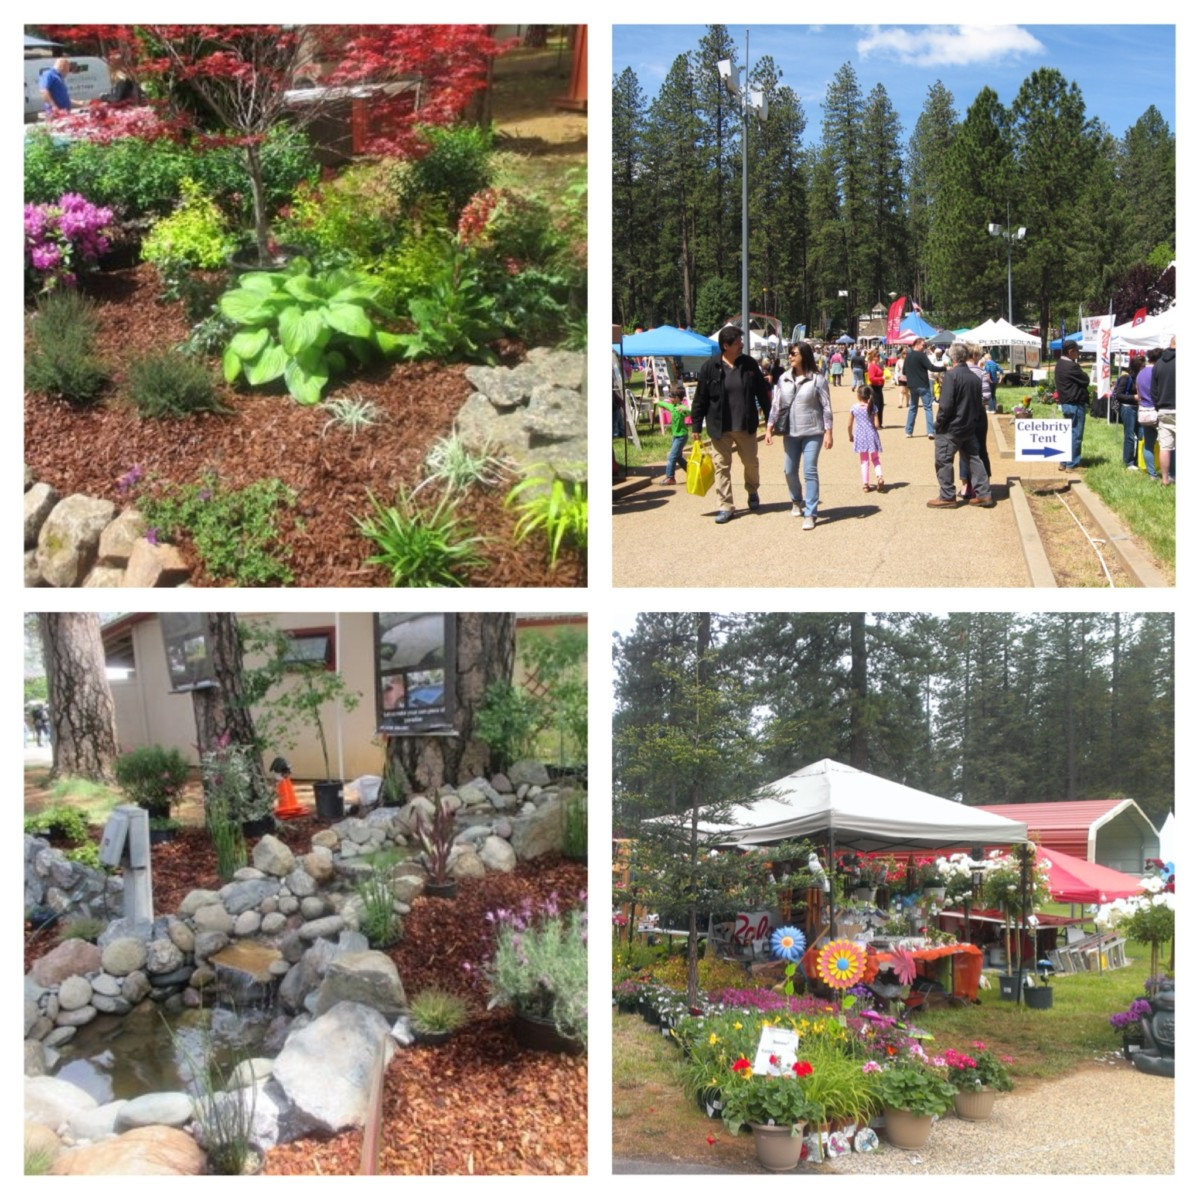 Stop By And Get Lots Of Ideas For Home Improvement, DIY, Spring Planting,  And All Those To Do Projects. More Than 175 Vendors, Lots Of Food, Music,  ...